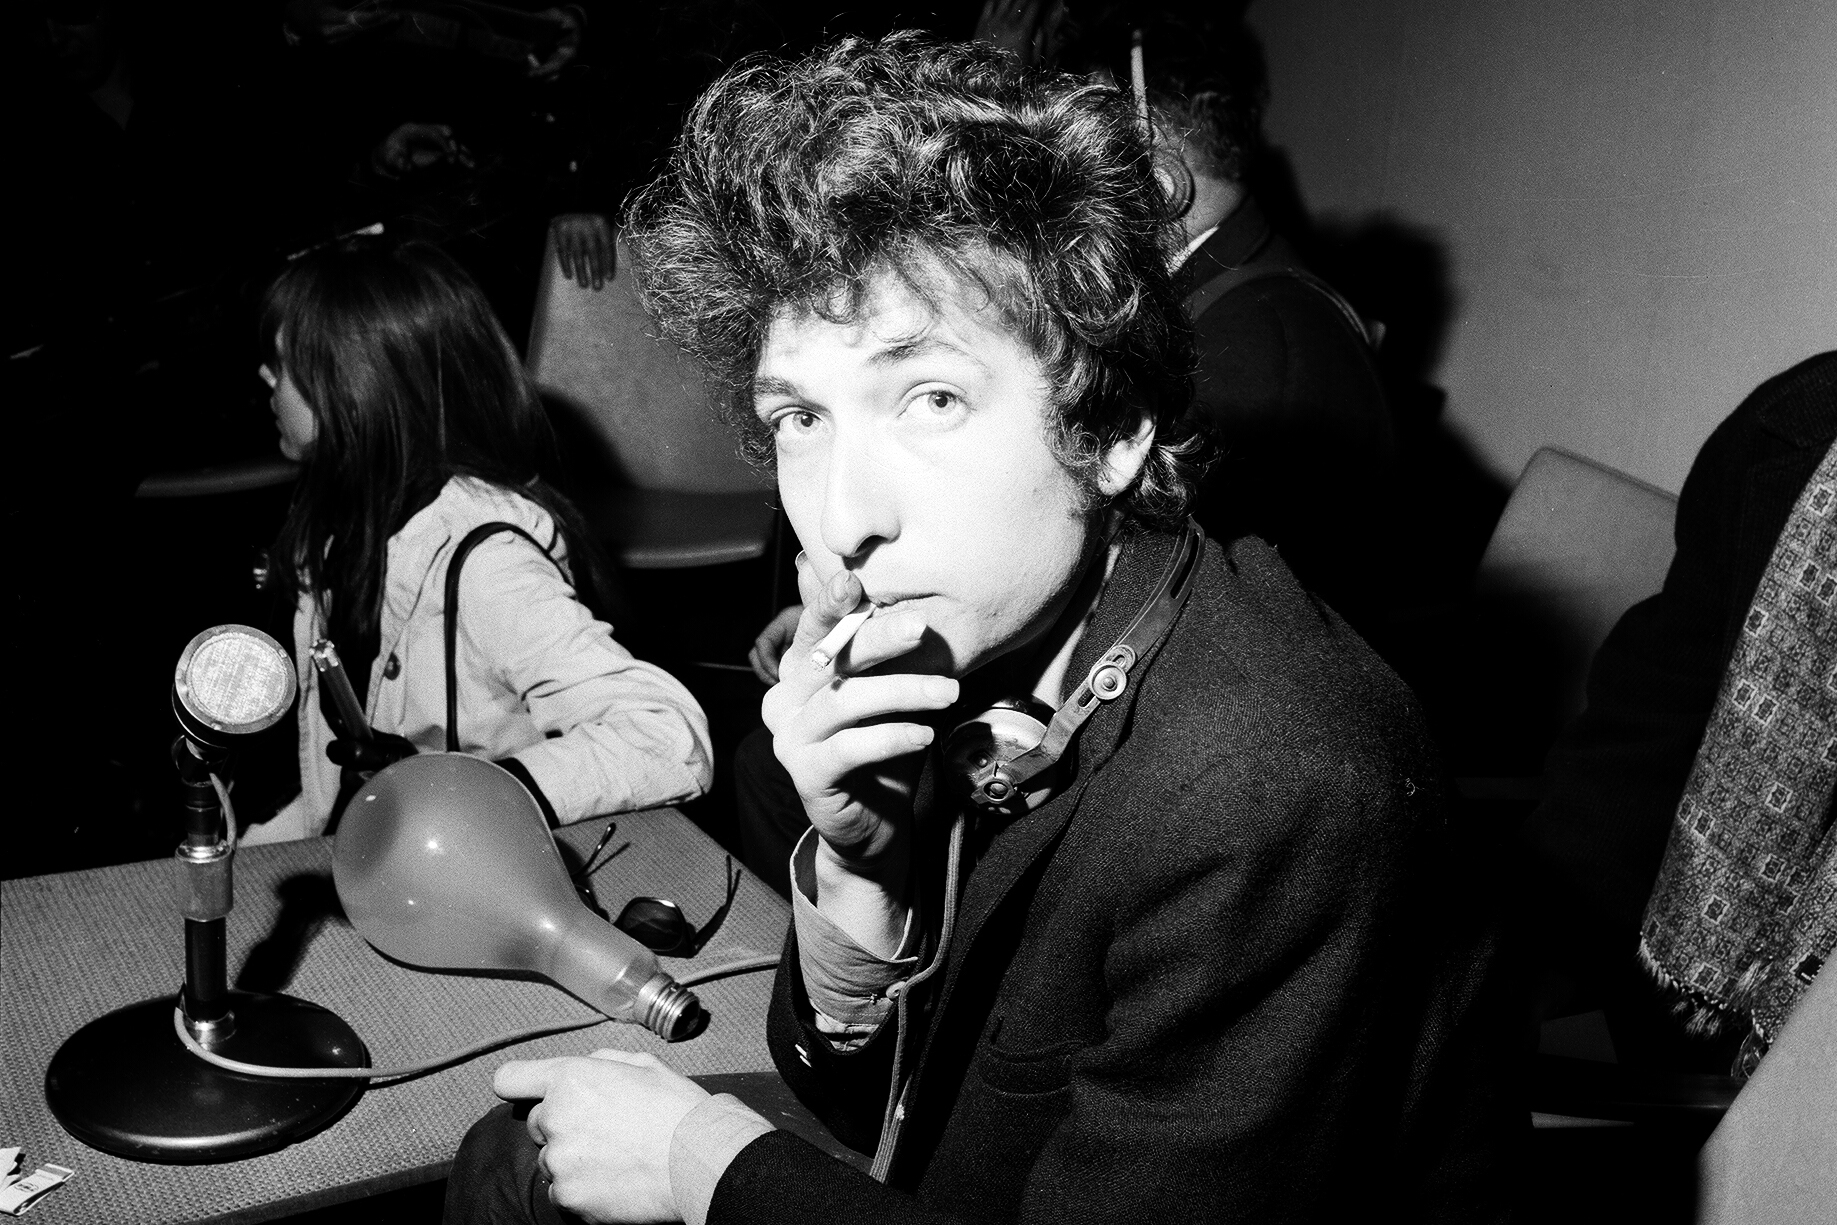 Bob Dylan at a press conference, London, 1965. (Photo by Stanley Bielecki/ASP/Getty Images)